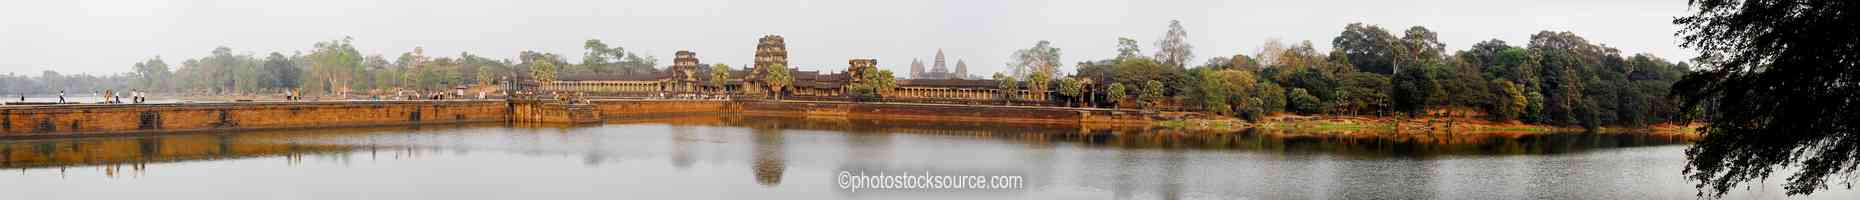 Photo of Angkor Wat West Moat